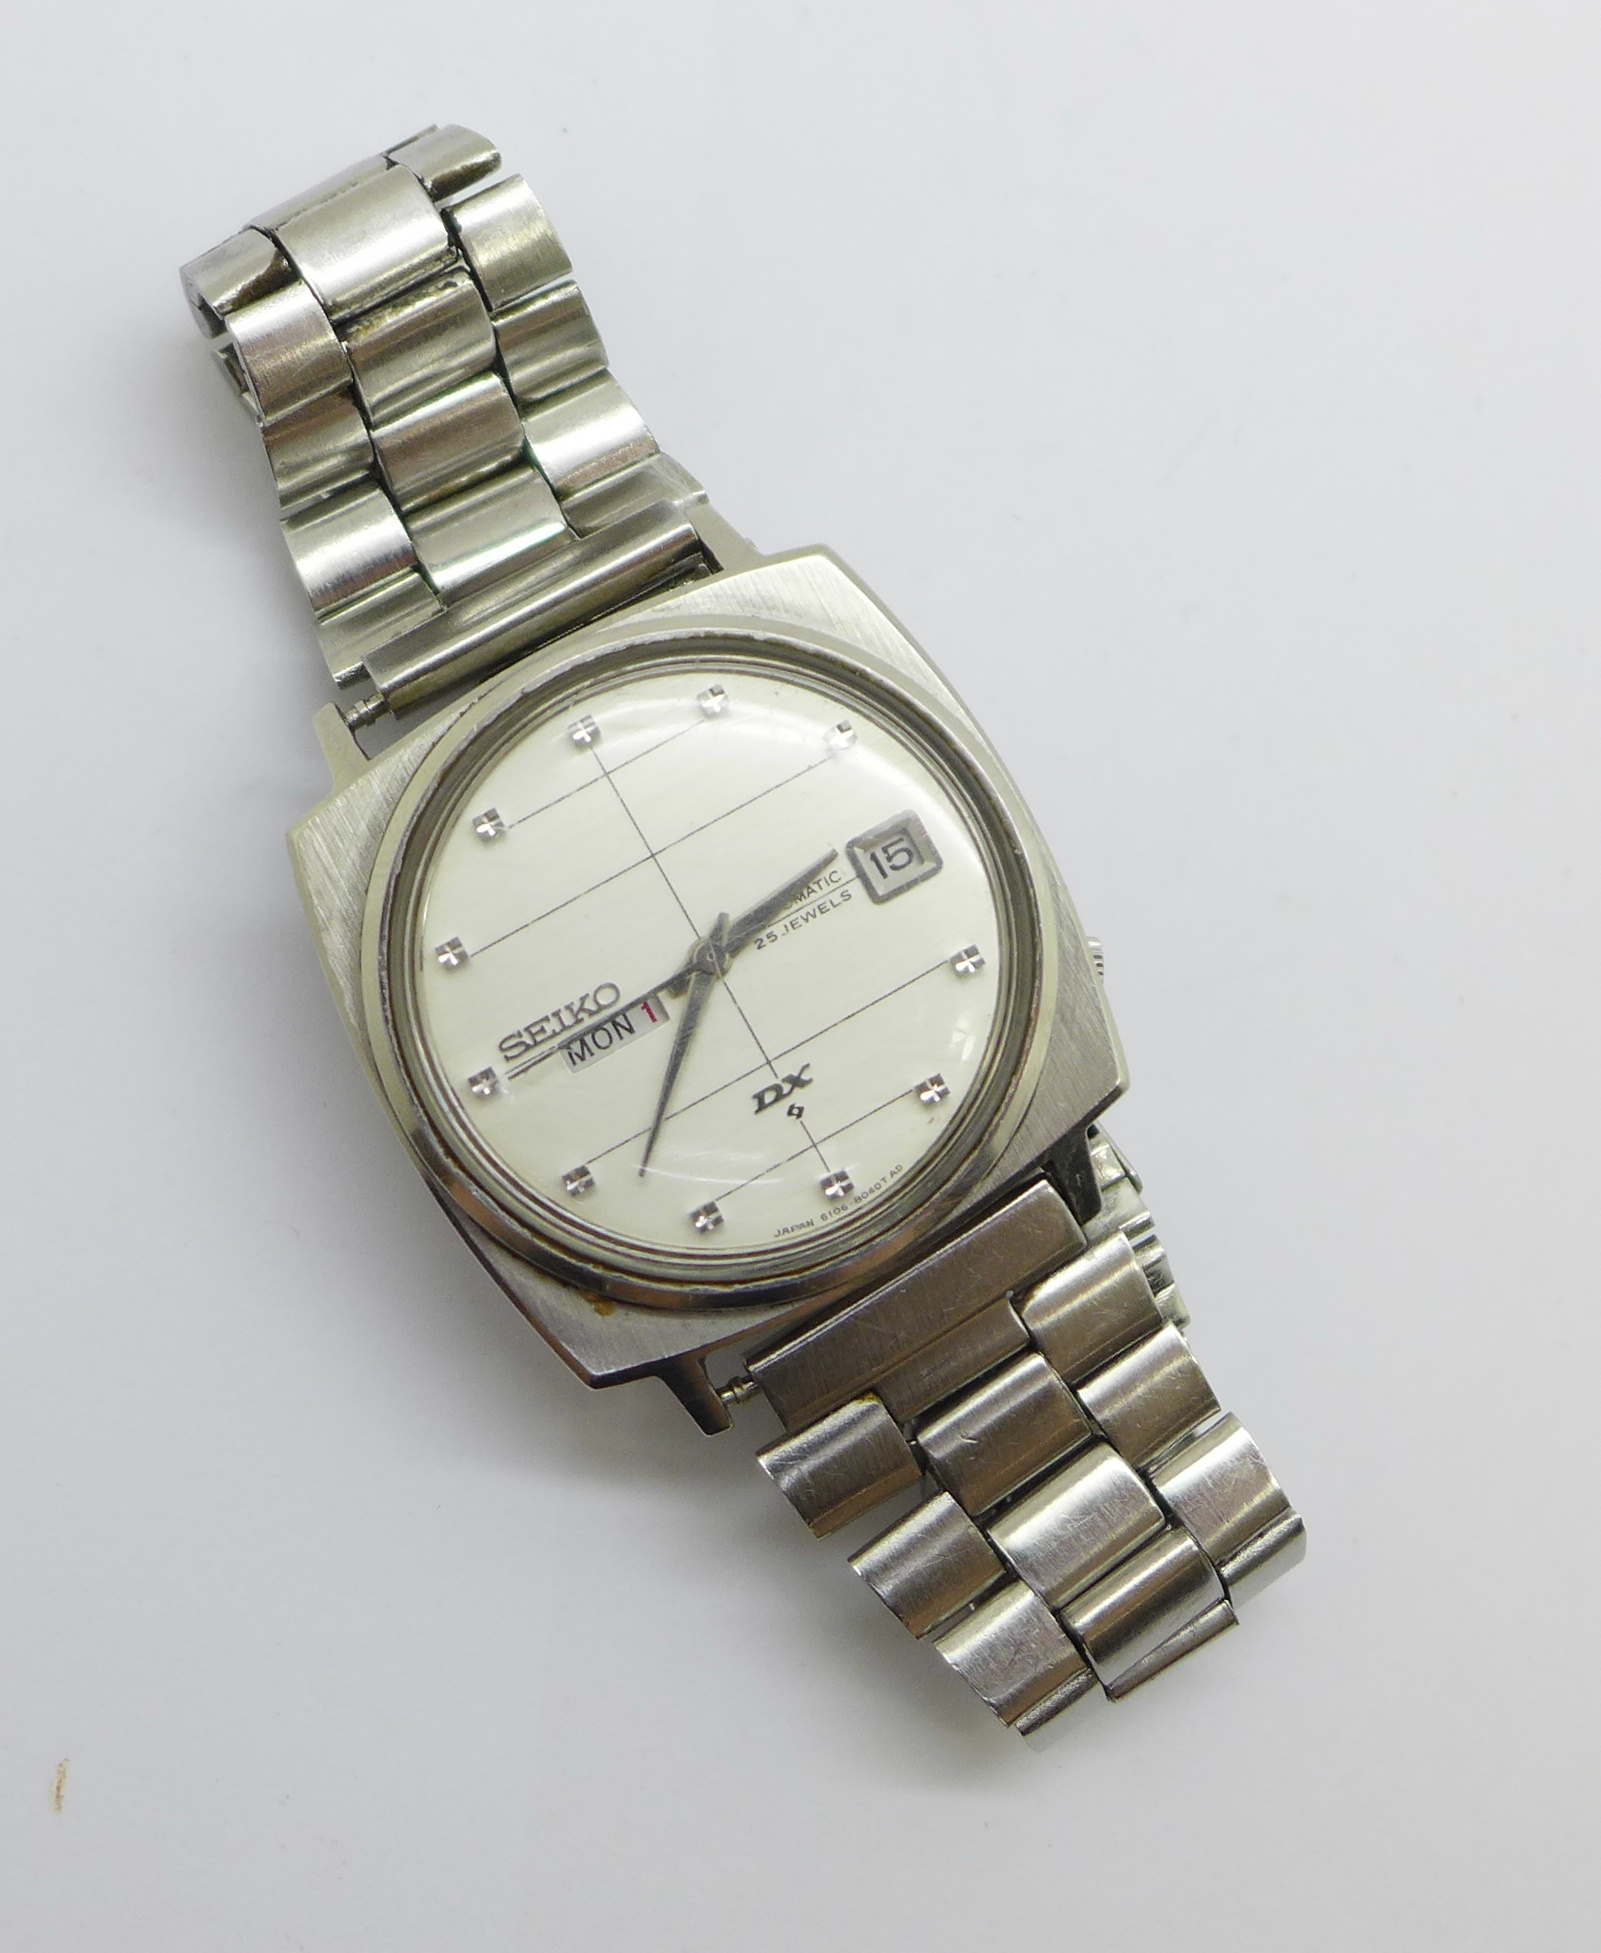 A Seiko DX Sea Lion automatic wristwatch, with day and date - Image 4 of 6